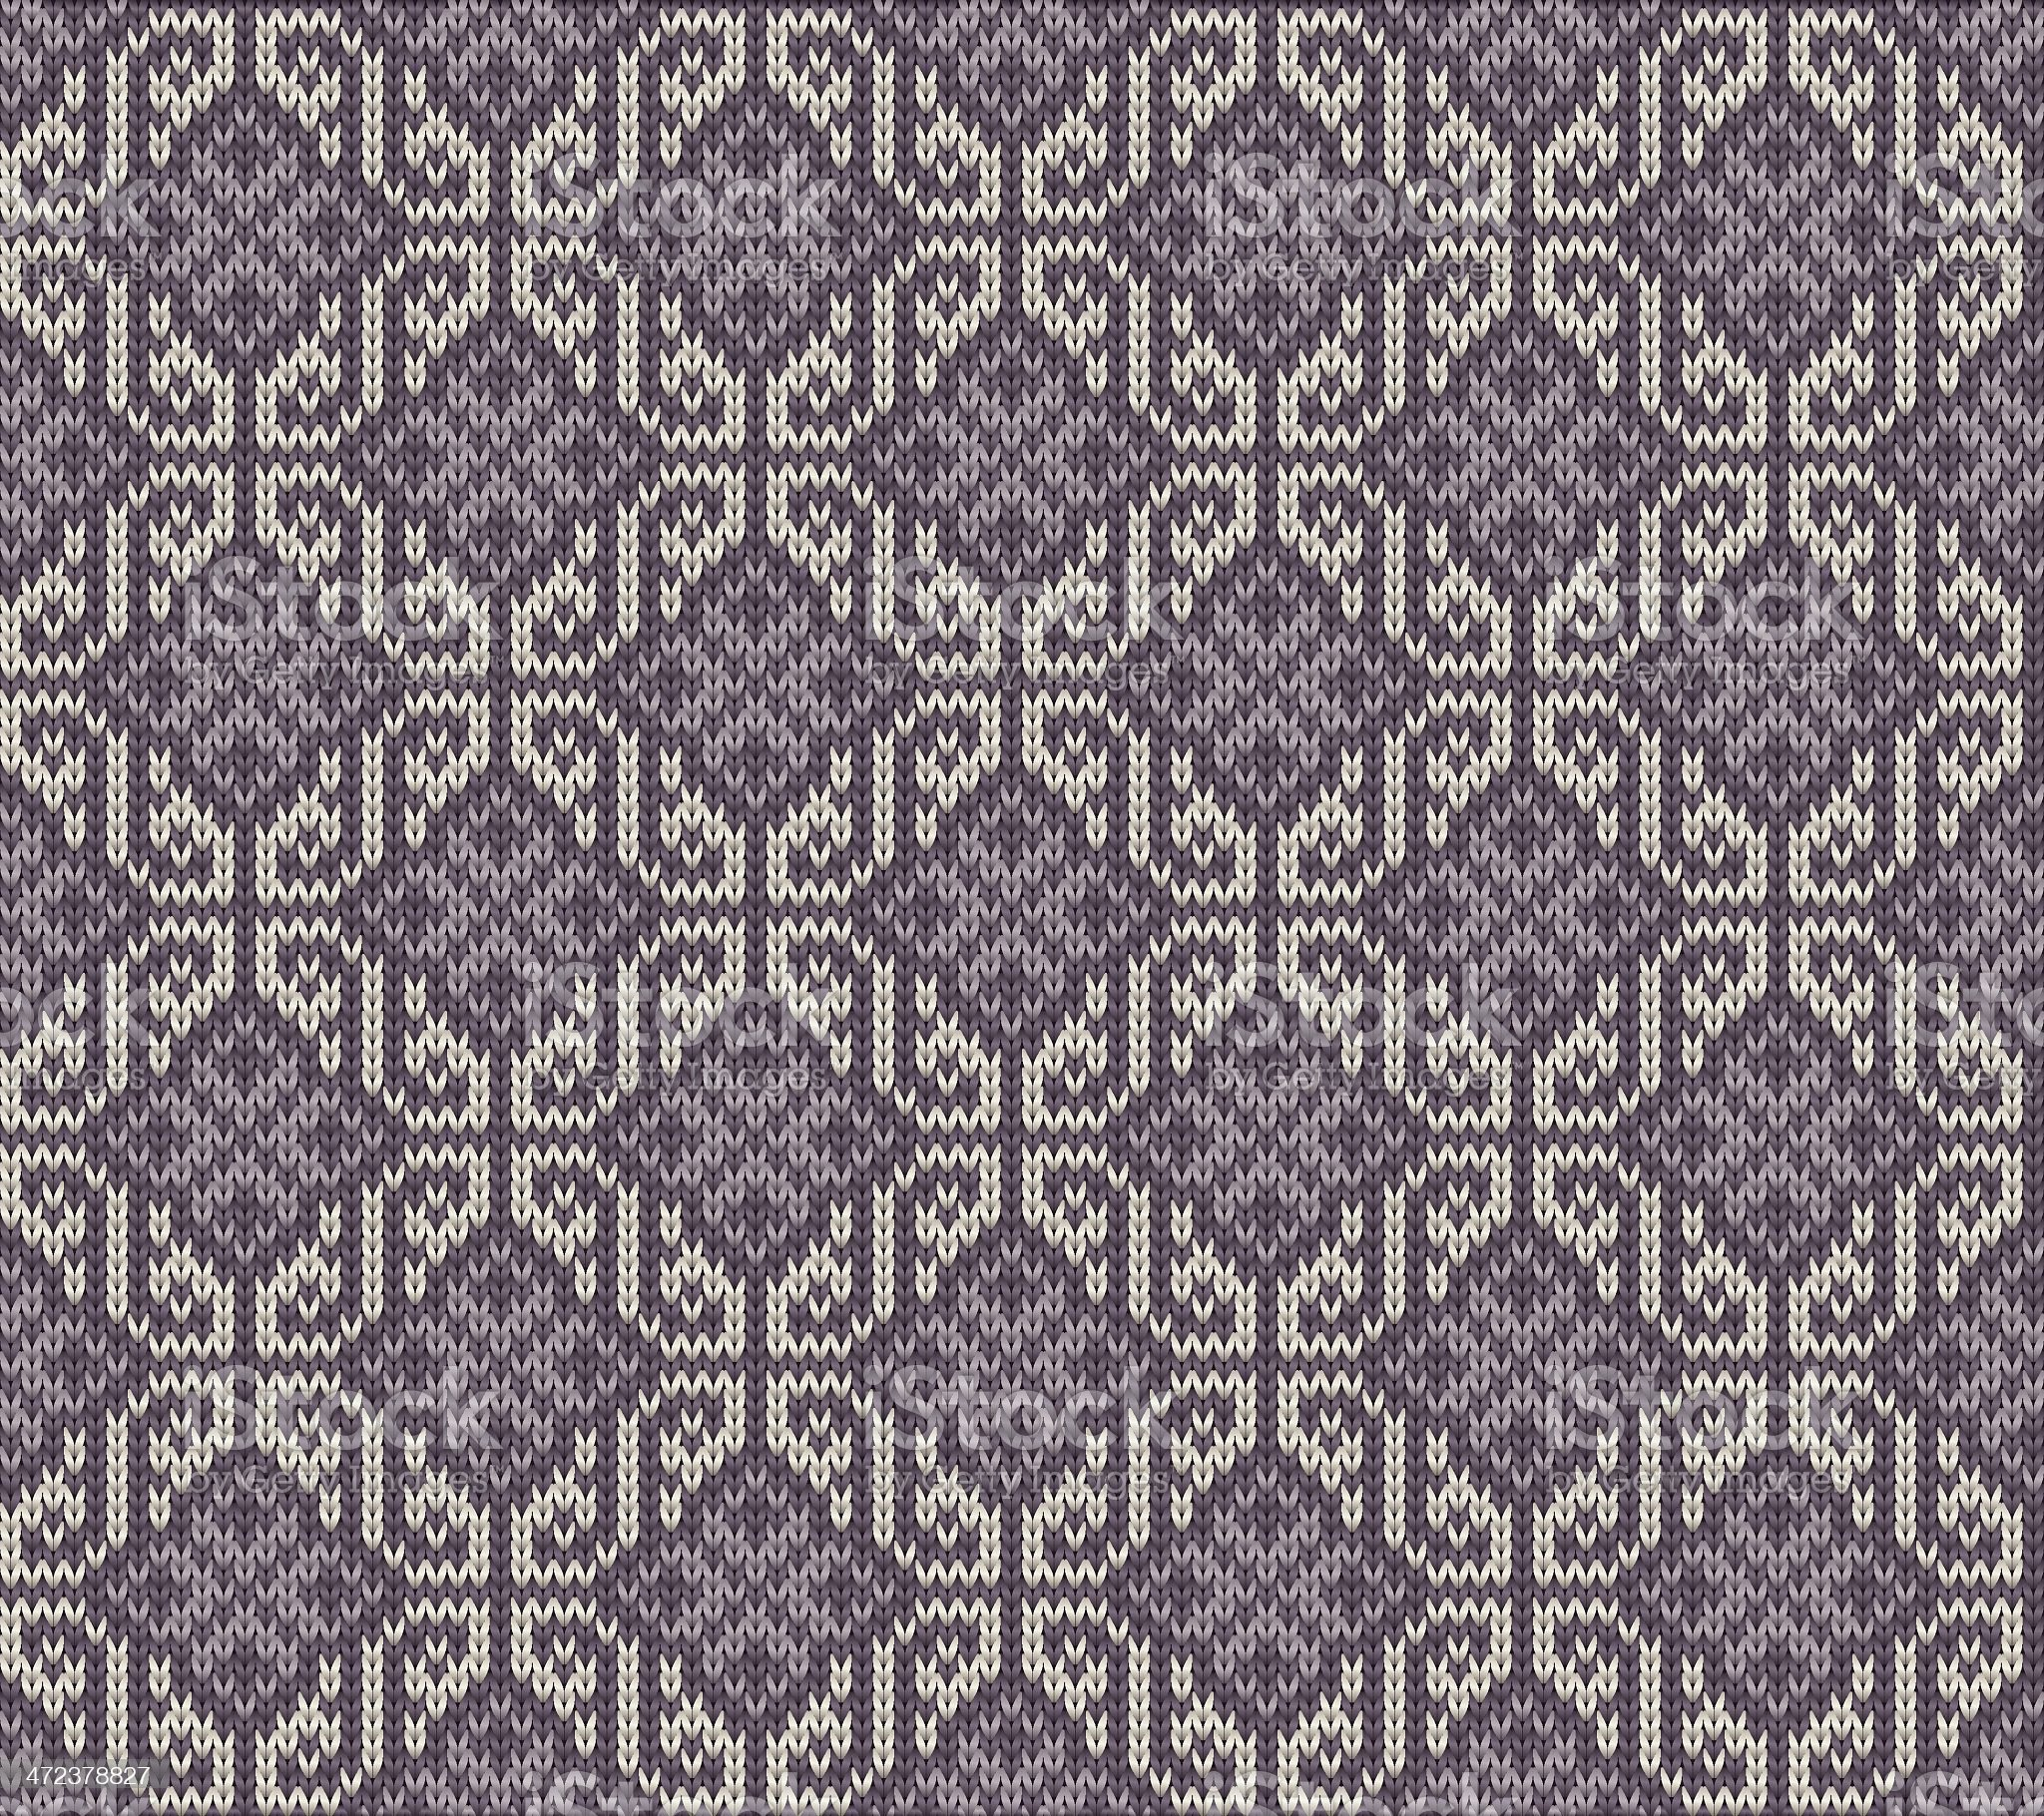 Seamlessly repeating knitting pattern royalty-free stock vector art